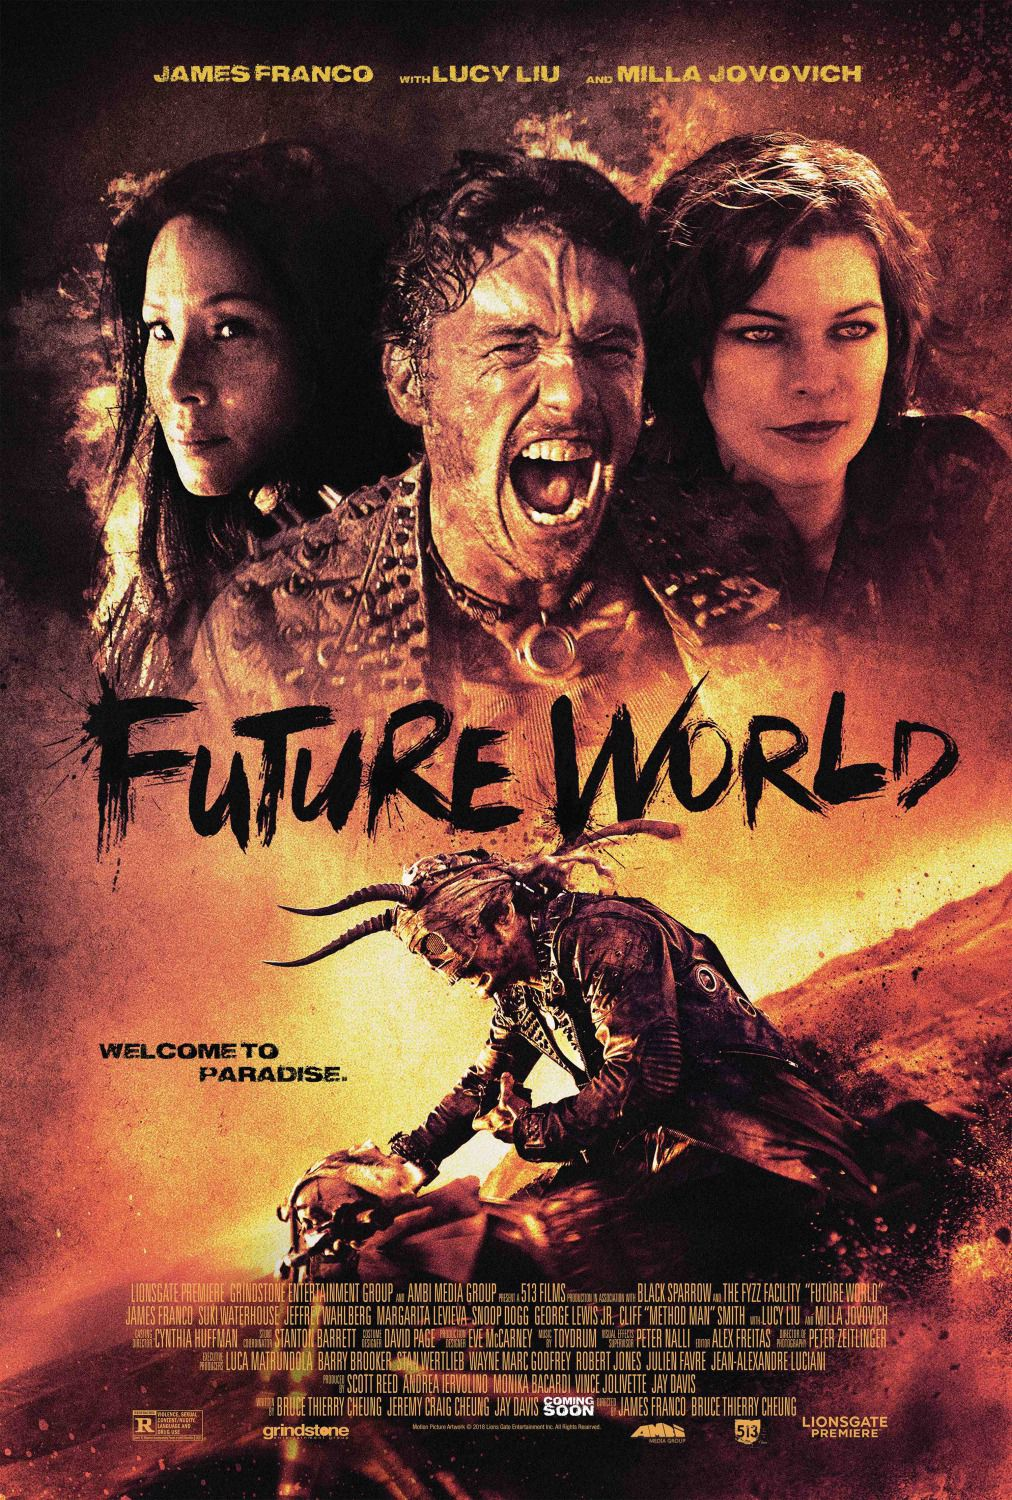 Future World - welcome to Paradise - Cast: James Franco, Suki Waterhouse, Milla Jovovich, Lucy Liu - poster 2018